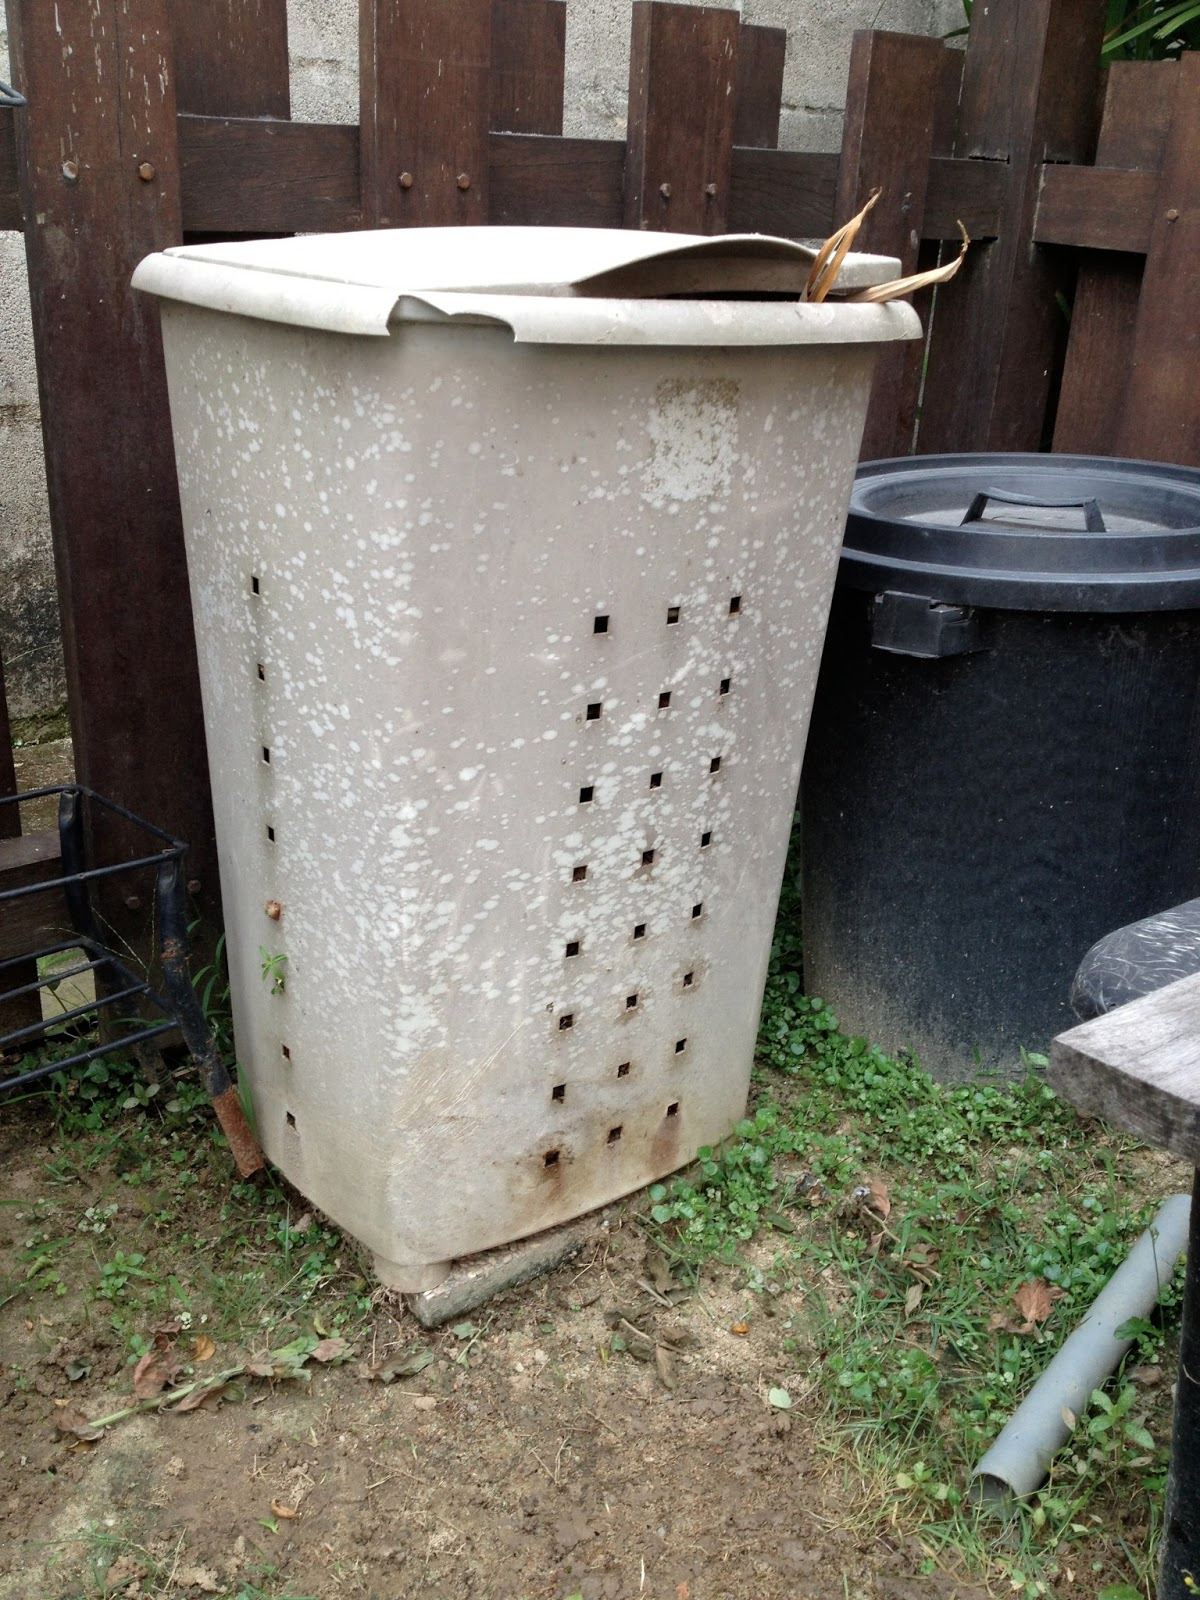 How To Make Compost Bin For Kitchen Idaes - audreycouture